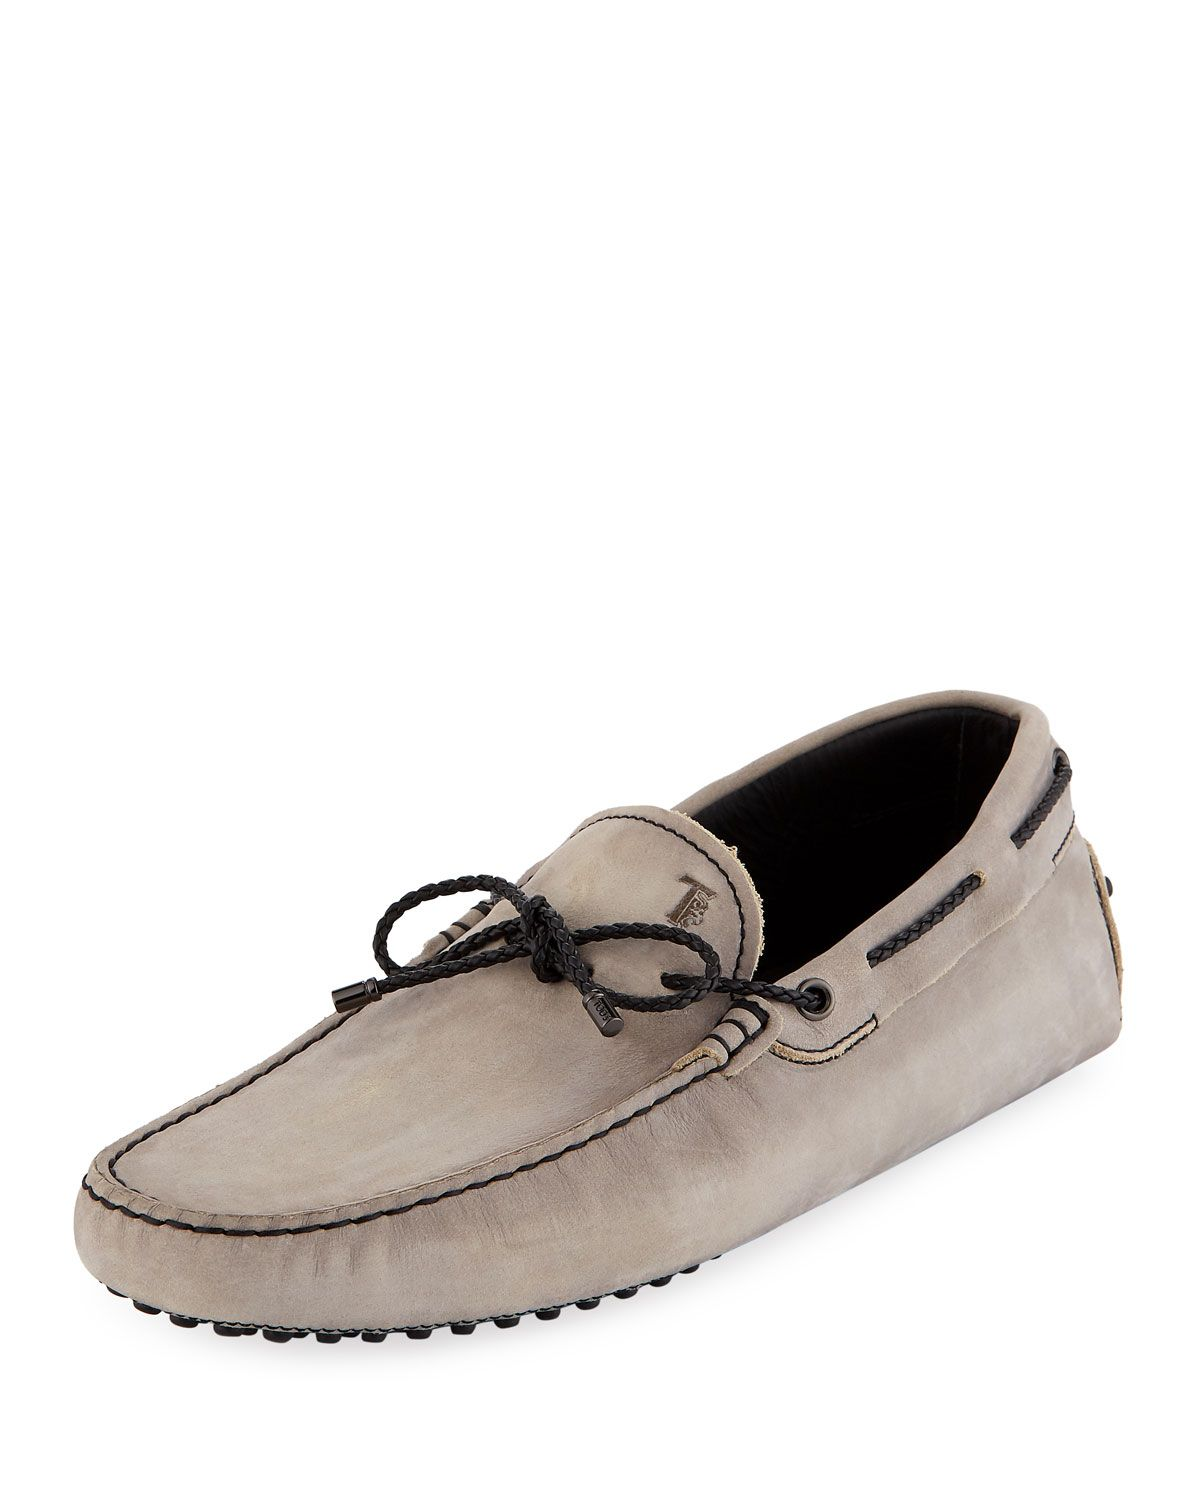 ecac32095a4 TOD S MEN S GOMMINI NUBUCK DRIVERS WITH BRAIDED TIE